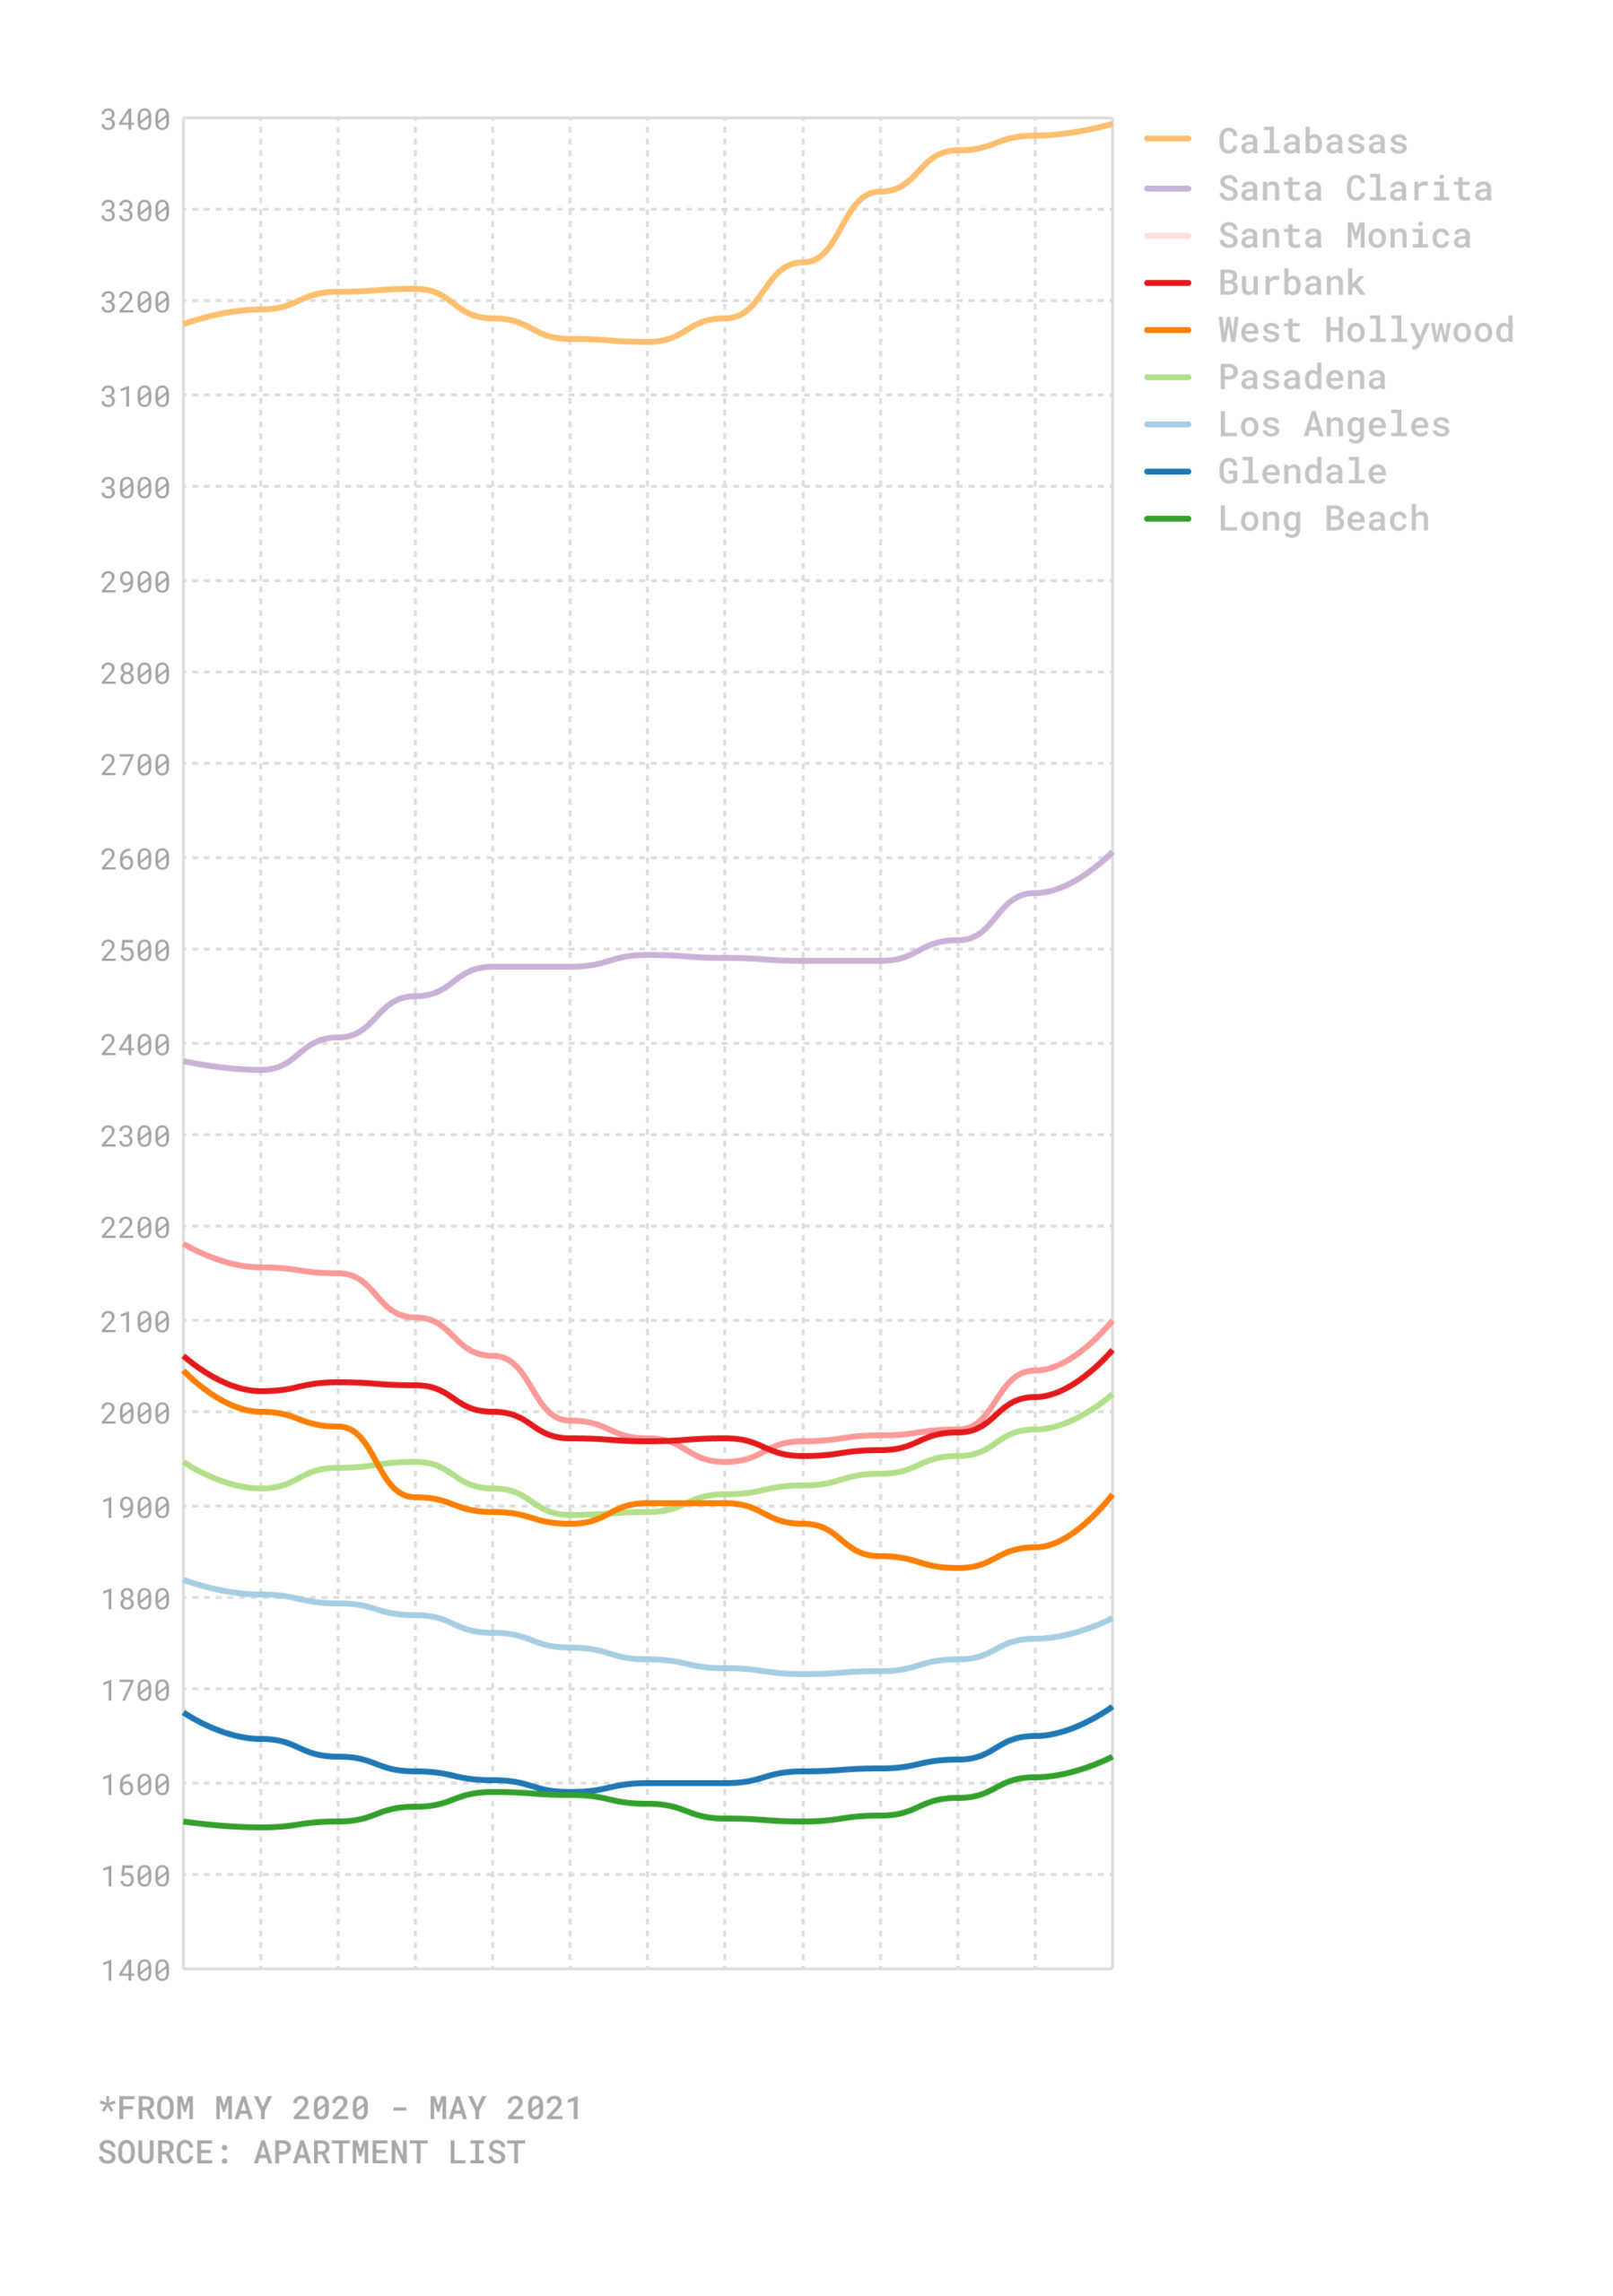 Graph of rent changes in 9 Los Angeles cities